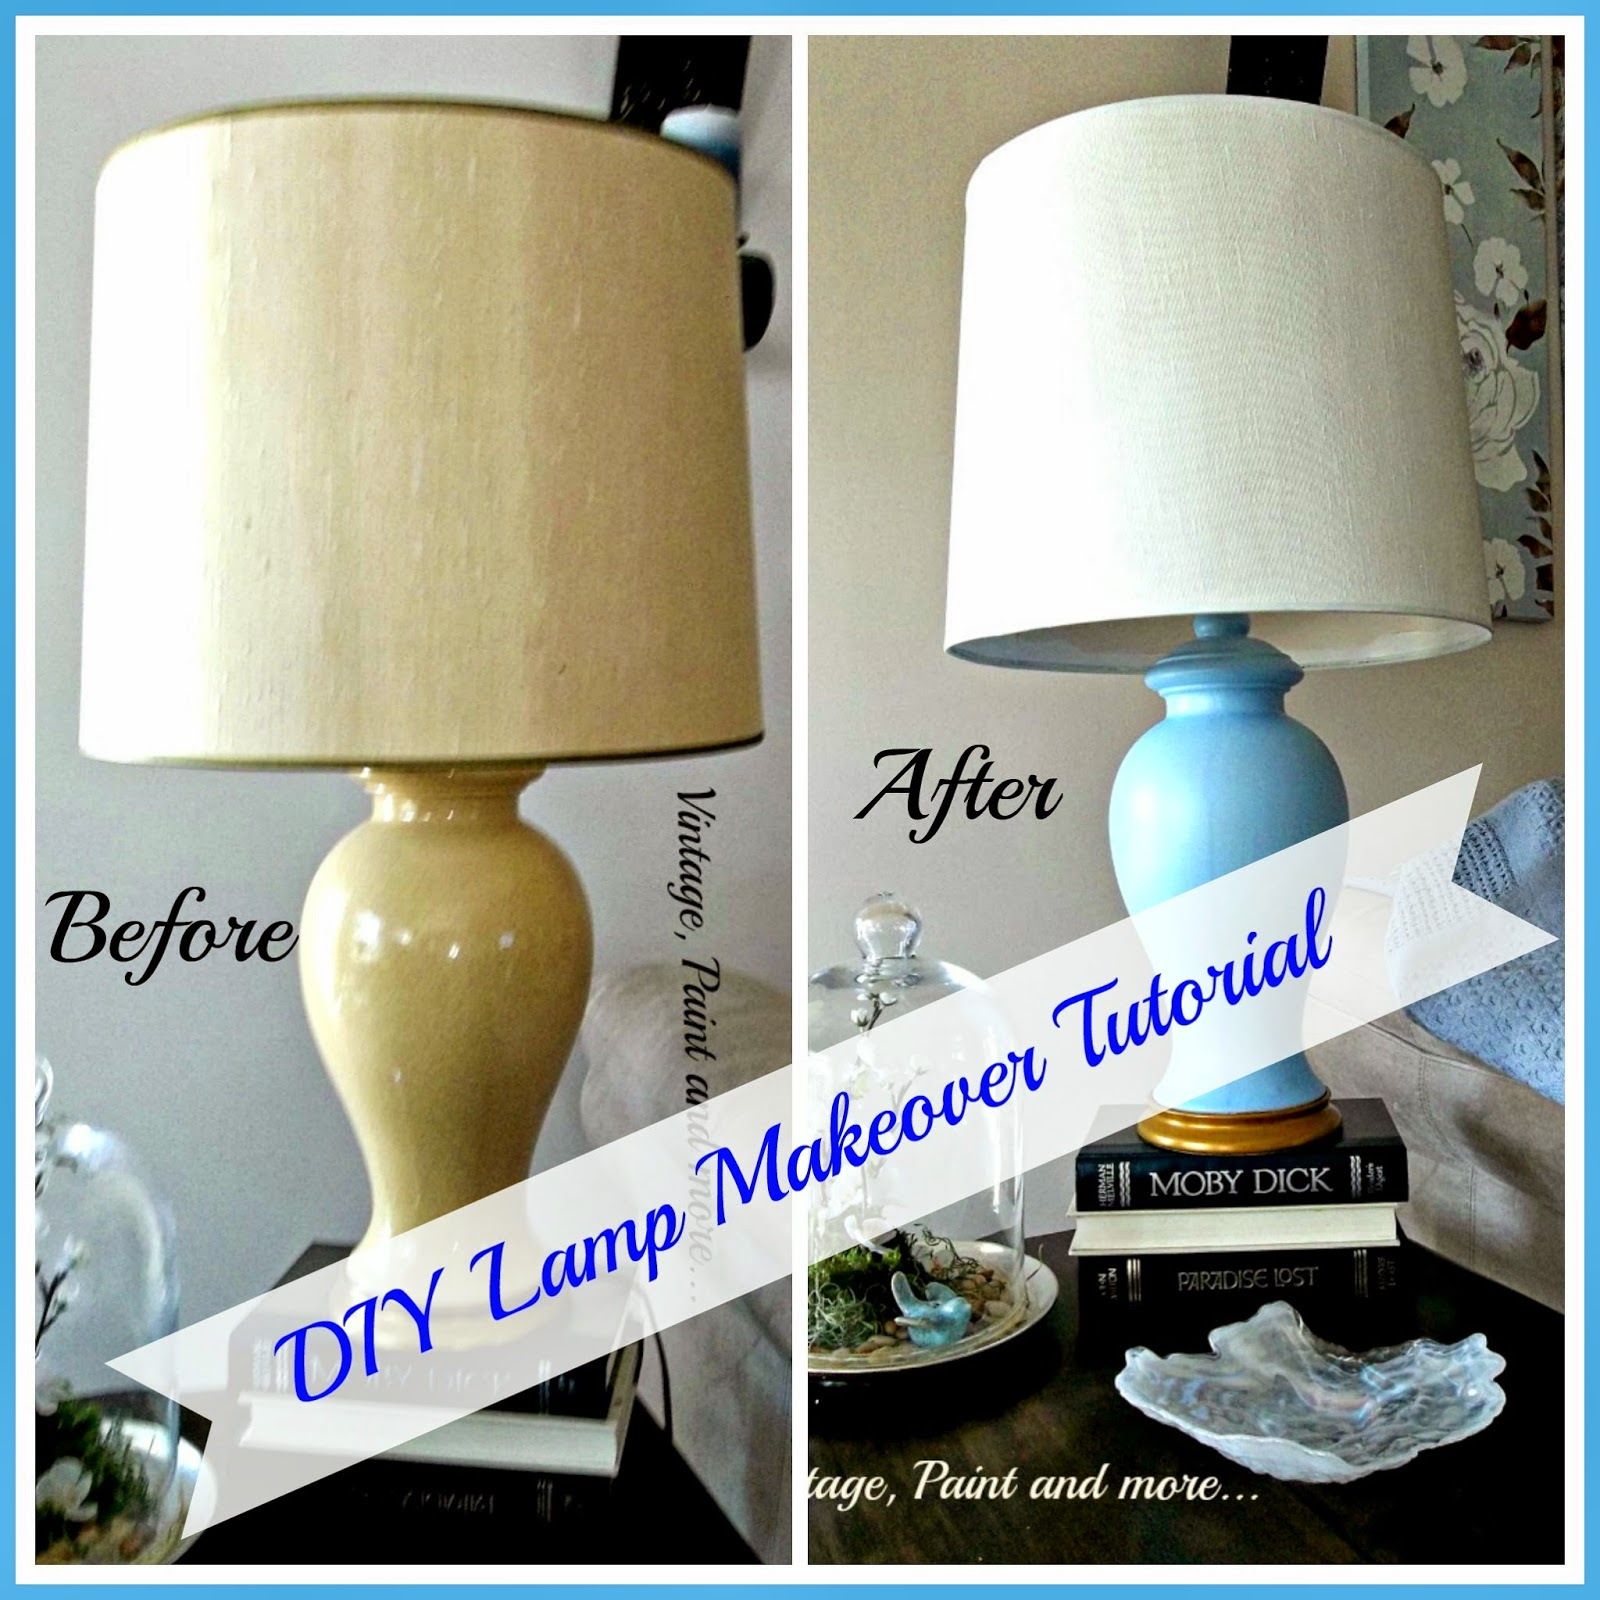 DIY Lamp Makeover - before and after of thrifted lamp painted with spray paint